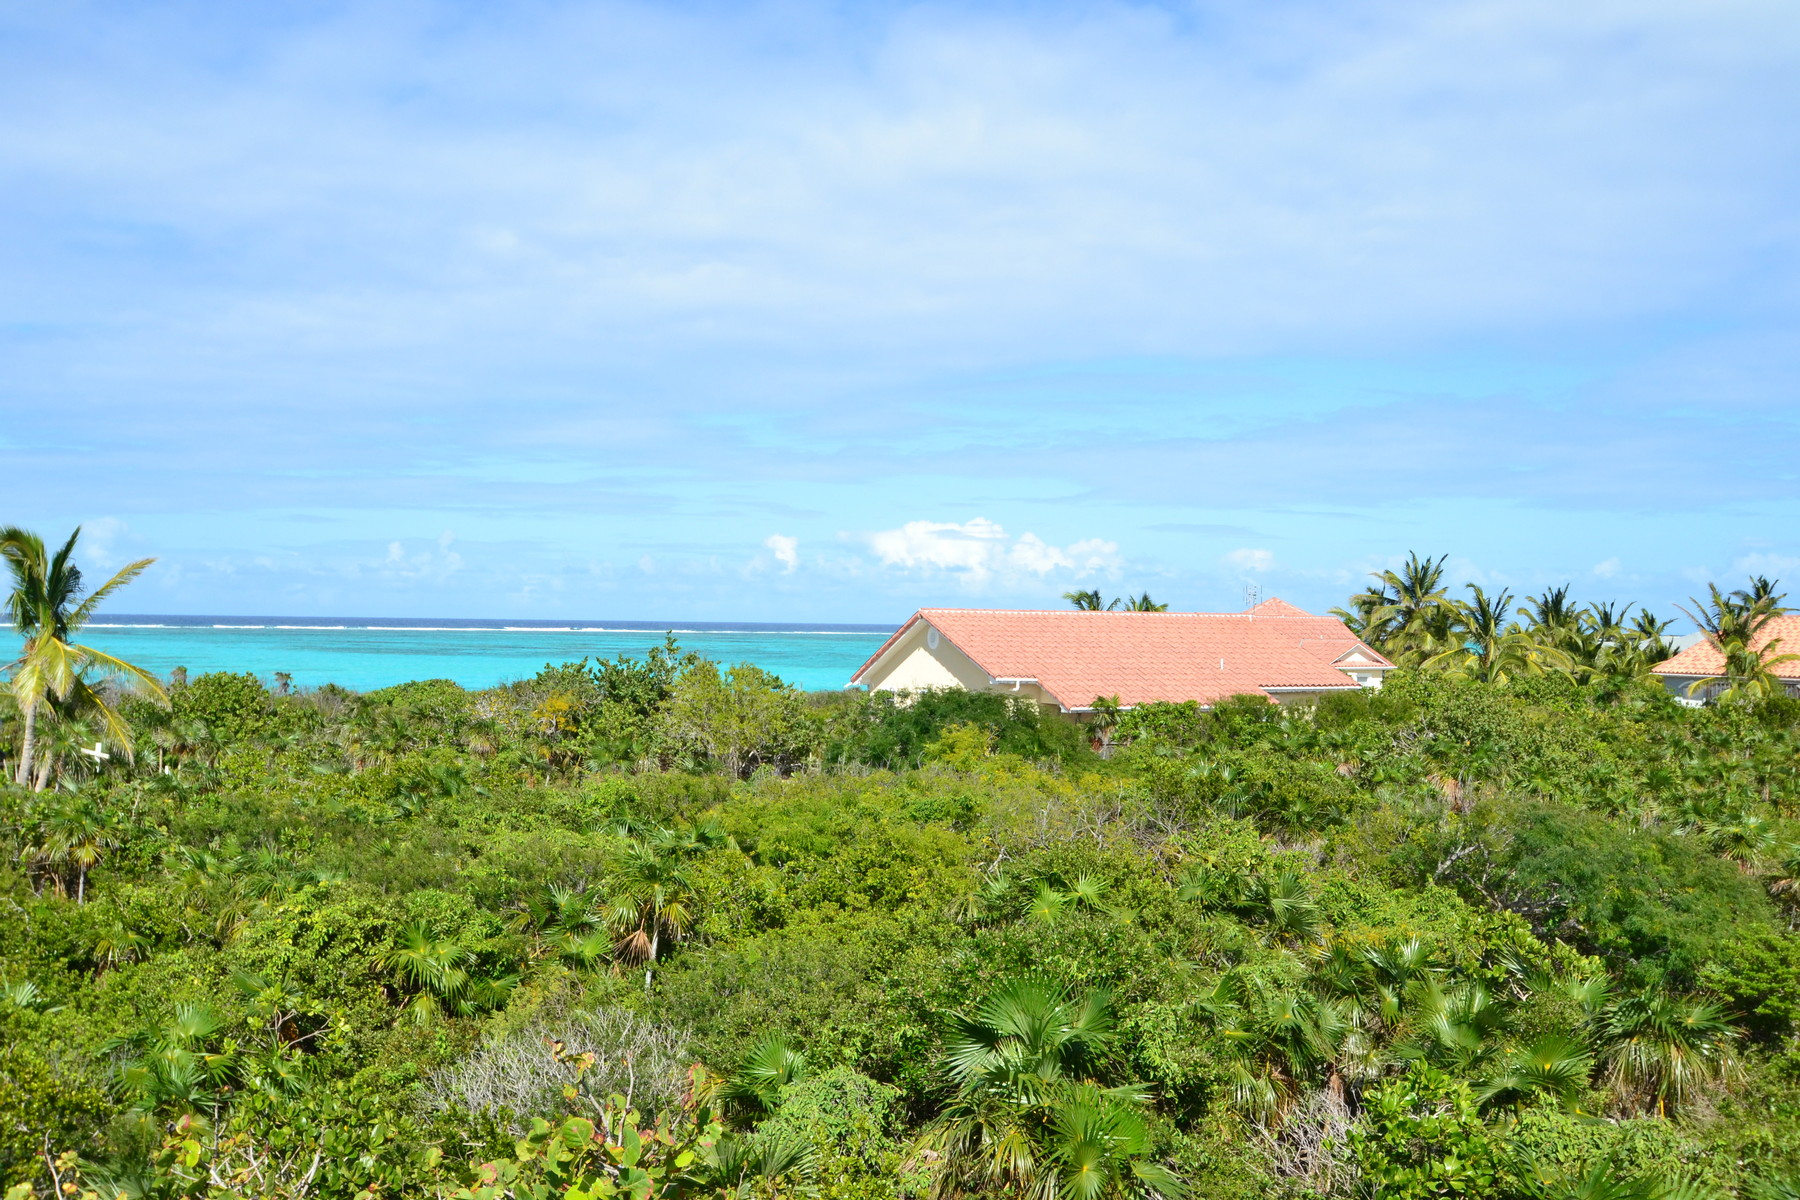 Single Family Home for Sale at Ocean View Villa - Whitby Oceanview Whitby, North Caicos TCI BWI Turks And Caicos Islands